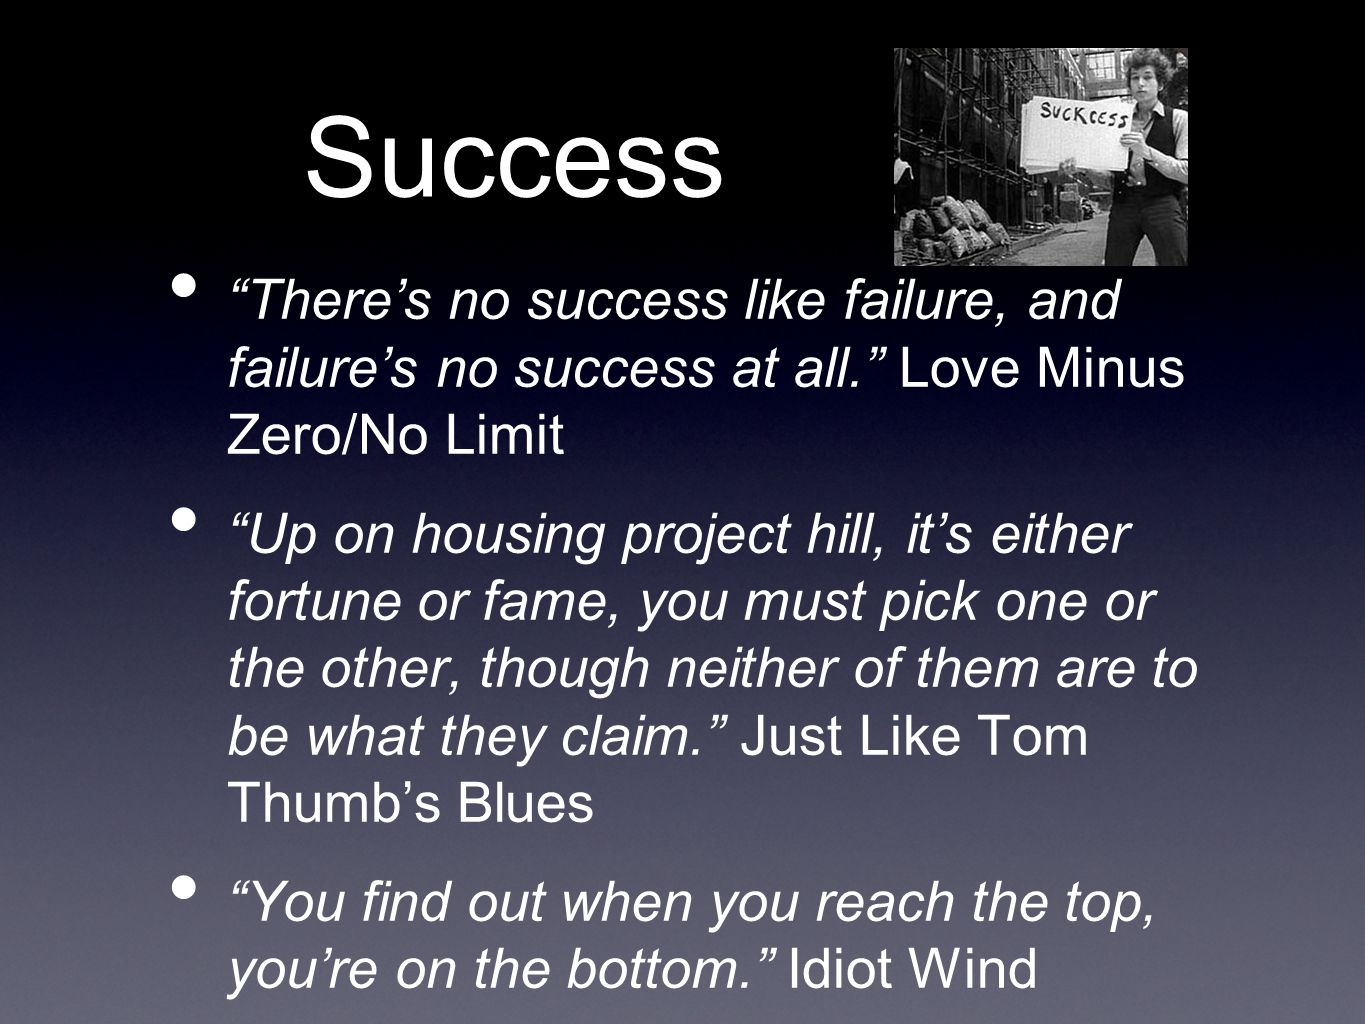 Success There's no success like failure, and failure's no success at all. Love Minus Zero/No Limit Up on housing project hill, it's either fortune or fame, you must pick one or the other, though neither of them are to be what they claim. Just Like Tom Thumb's Blues You find out when you reach the top, you're on the bottom. Idiot Wind